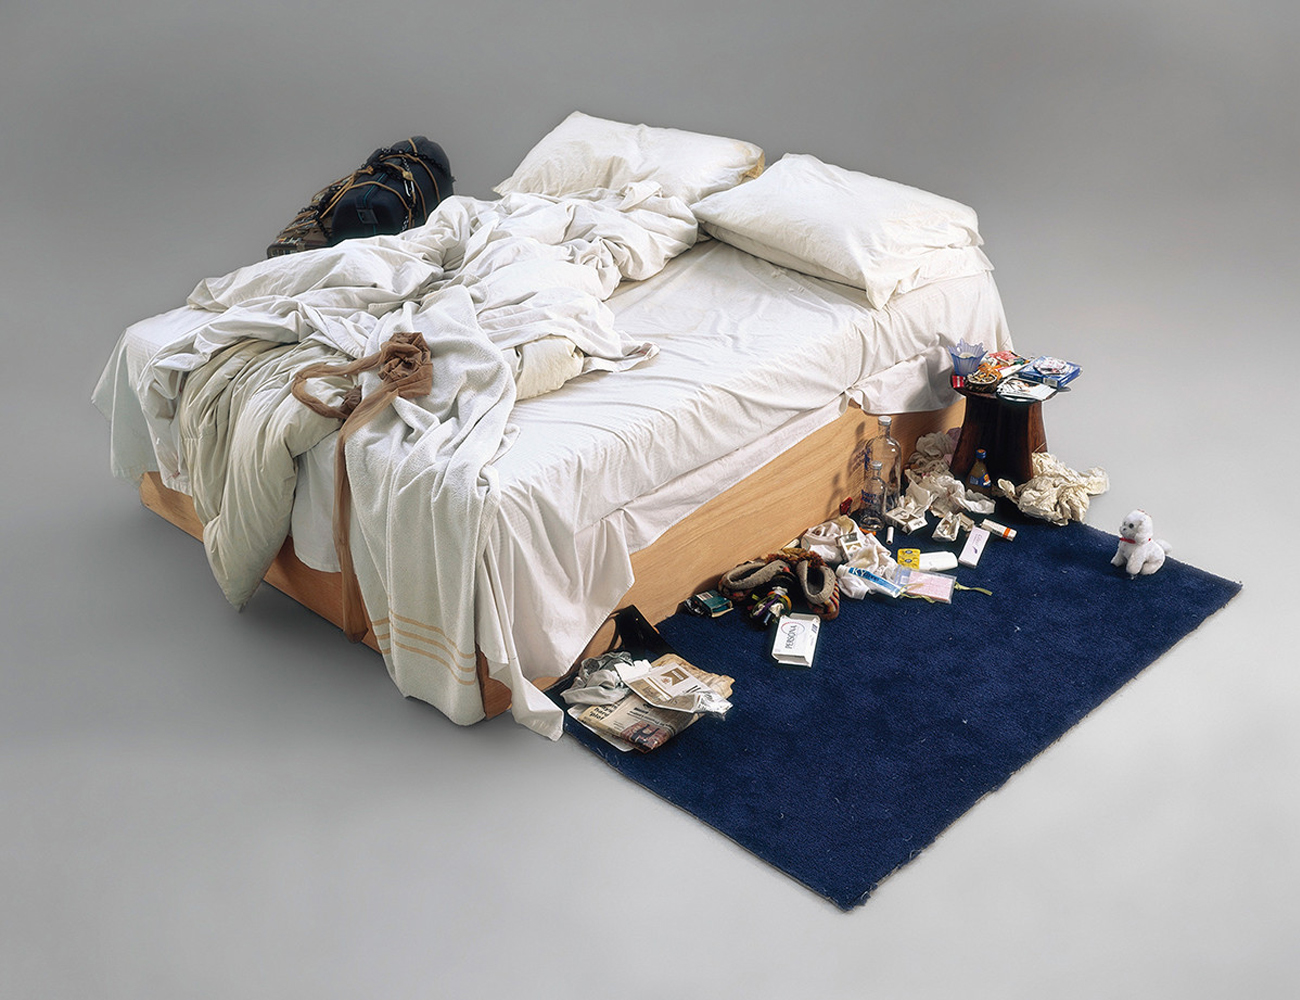 "Tracey Emin ""My Bed"". Image from royalacademy.org.uk"